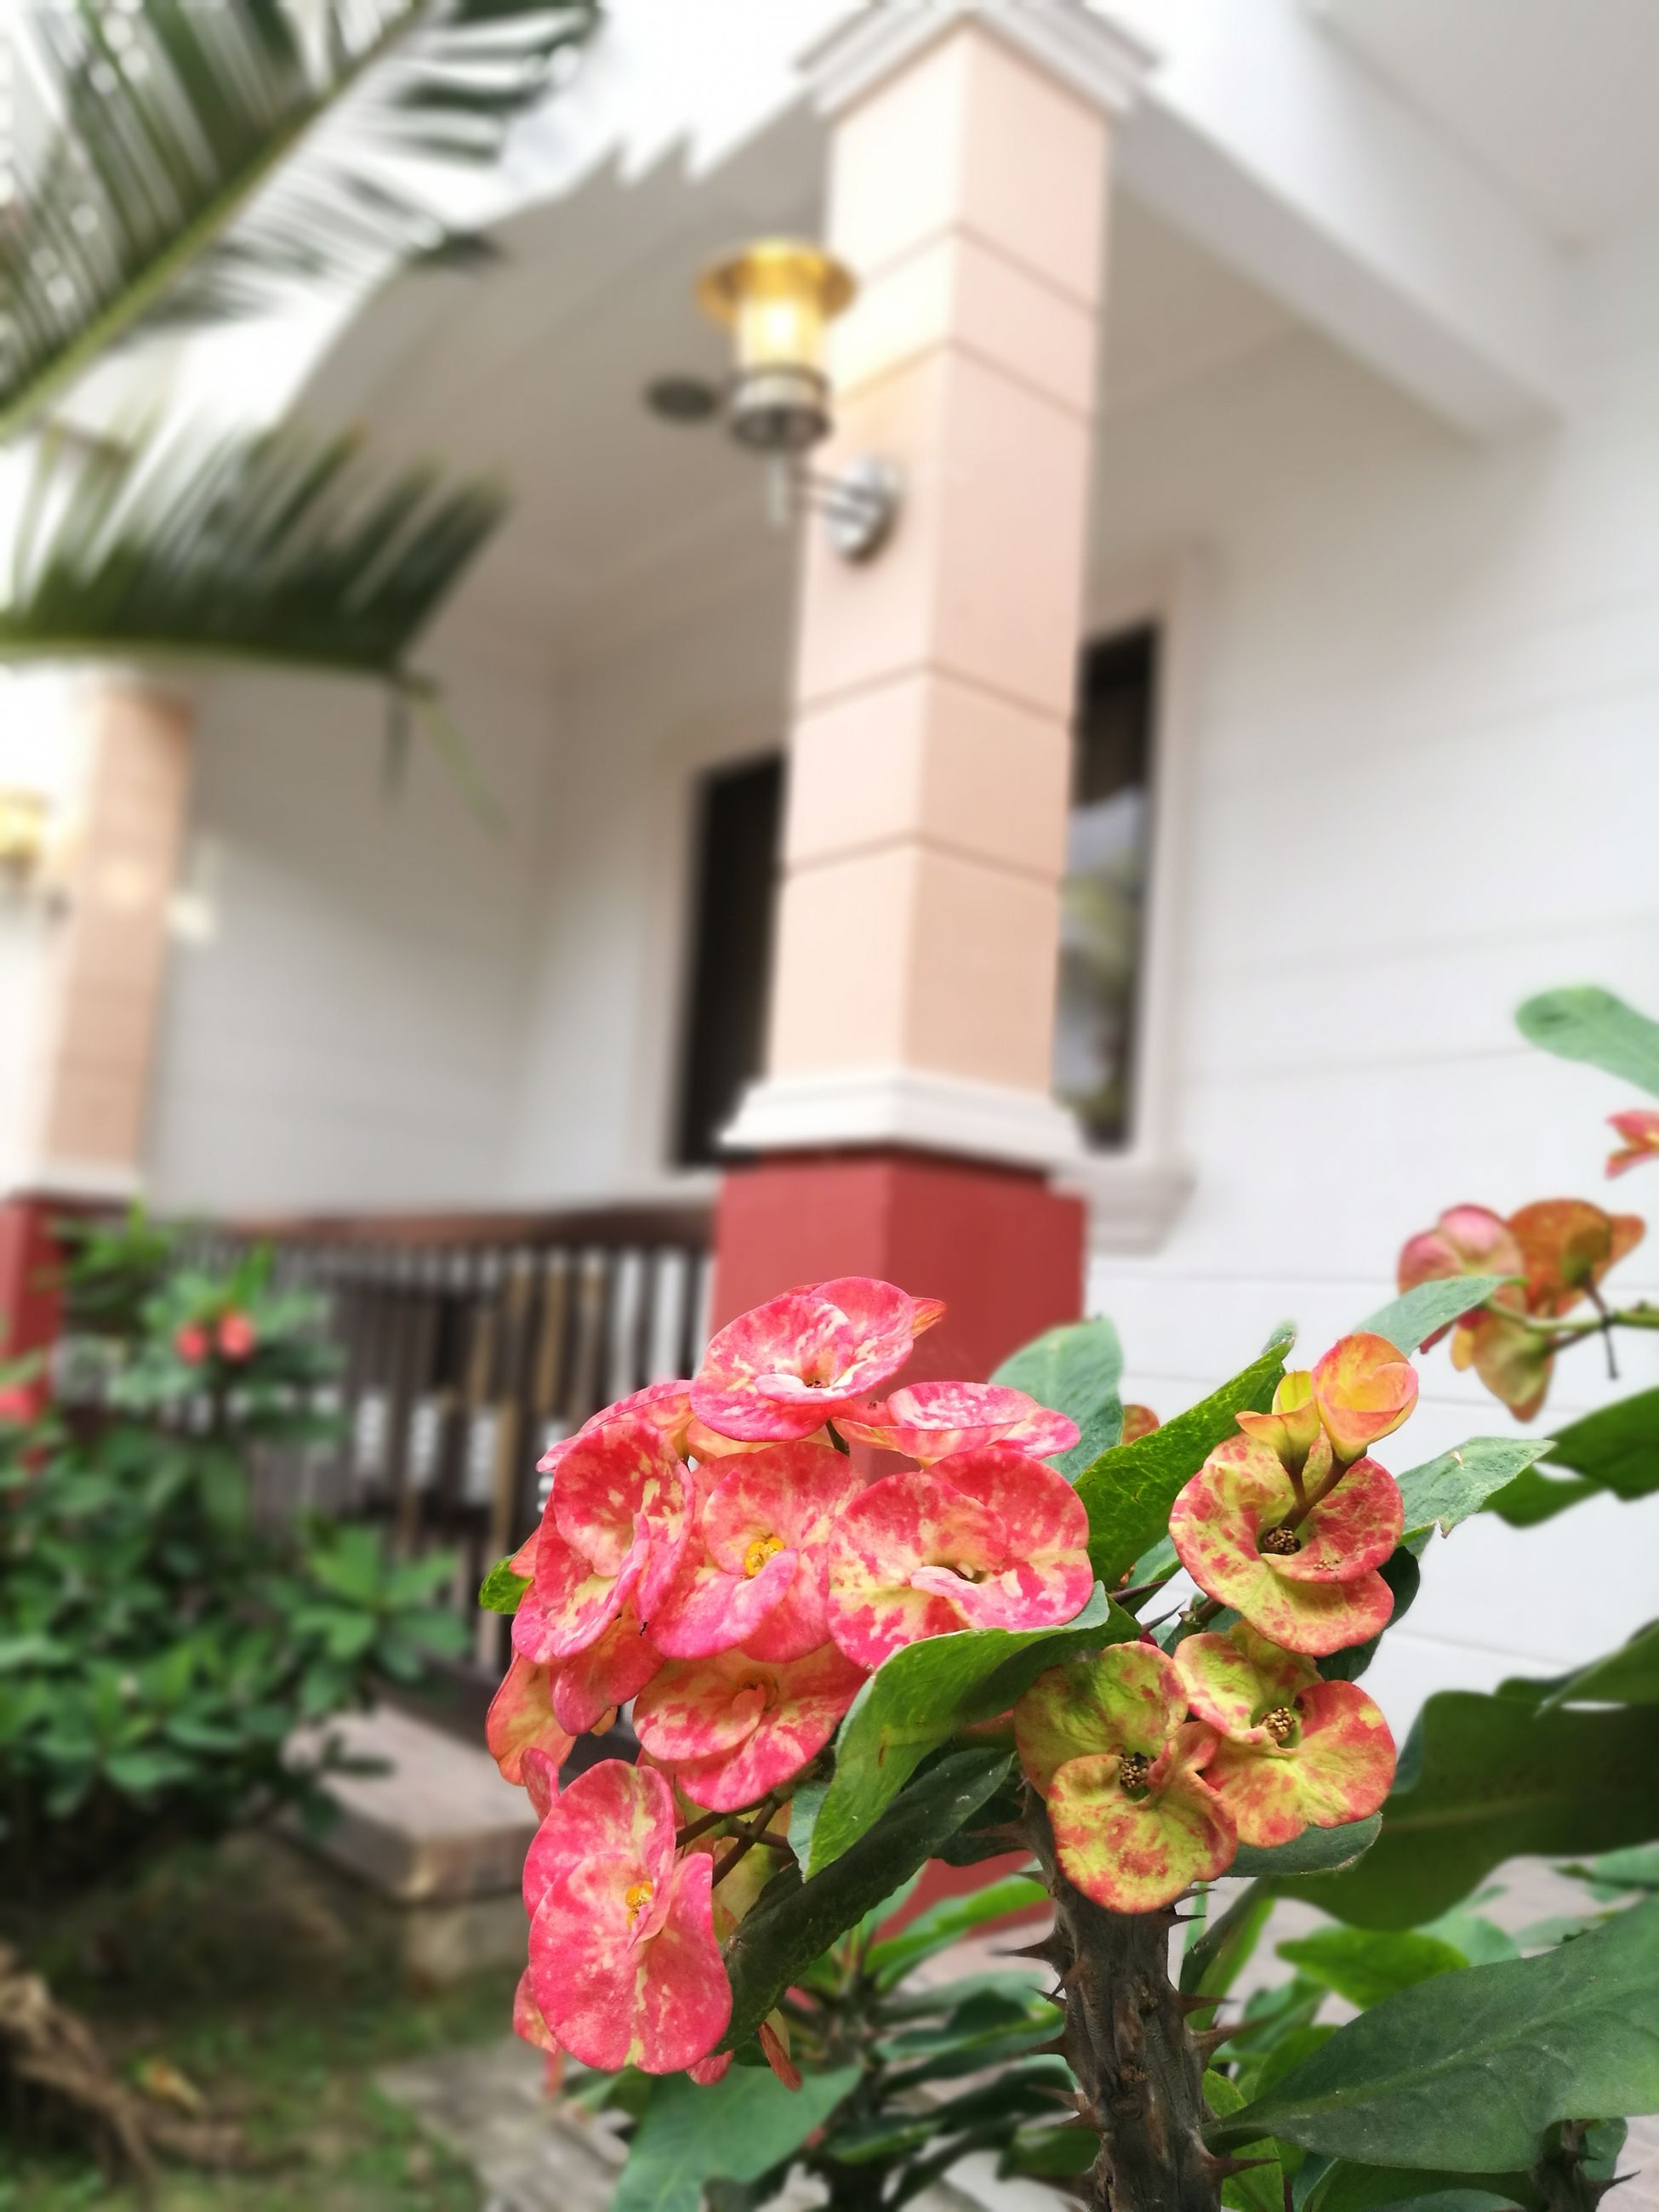 flower, plant, built structure, building exterior, architecture, no people, focus on foreground, growth, nature, freshness, fragility, pink color, close-up, day, flower head, beauty in nature, outdoors